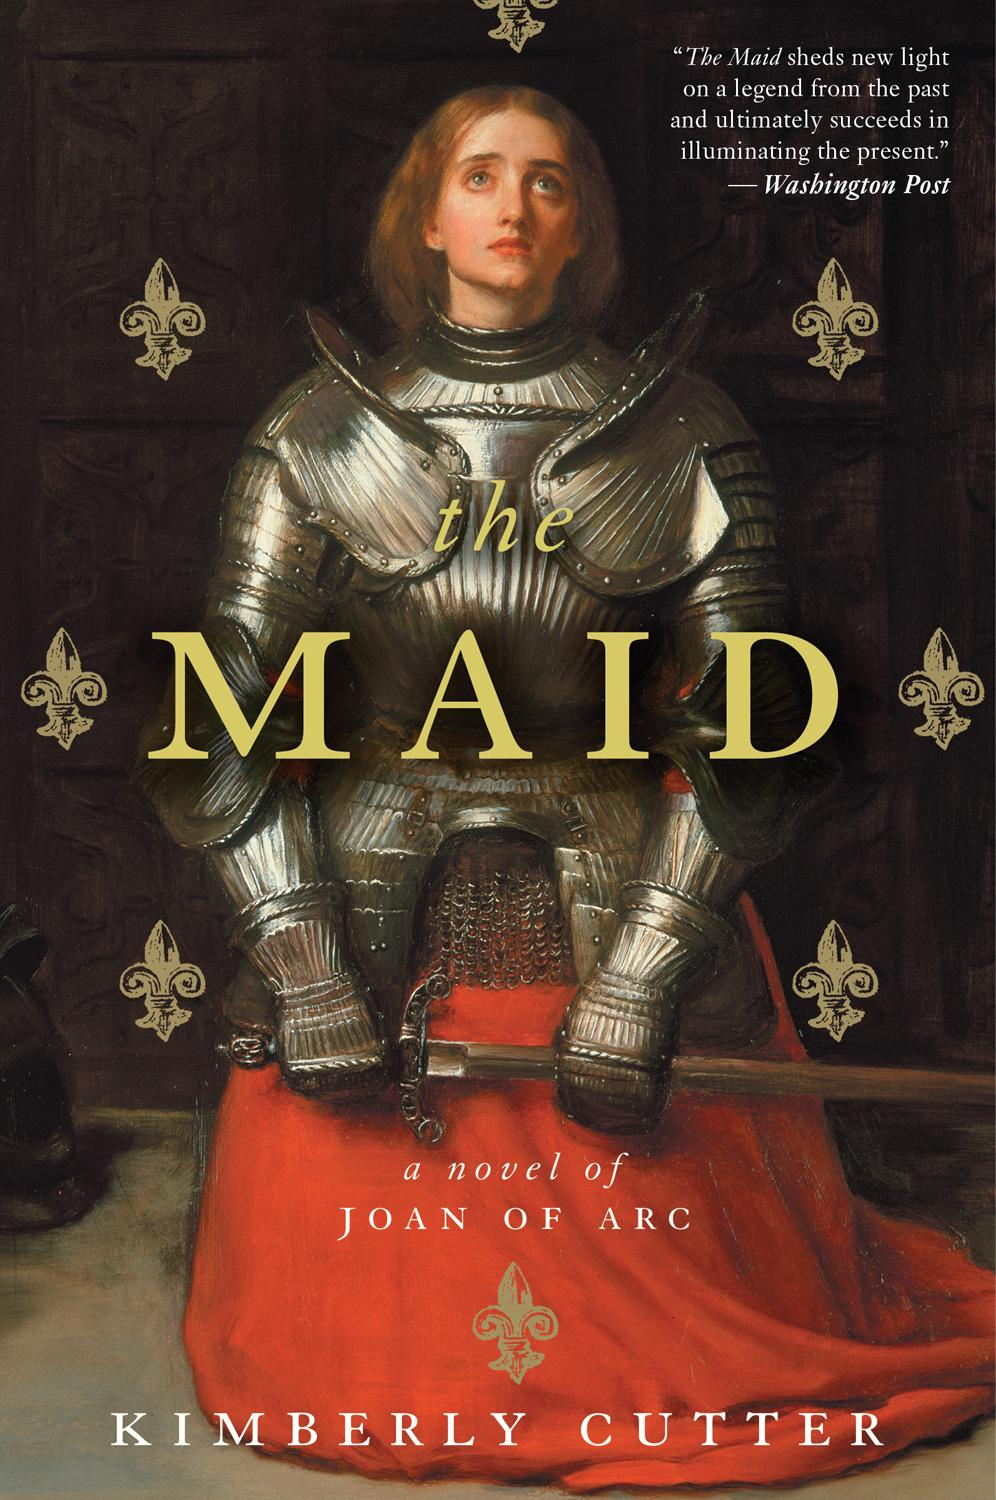 The Maid: A Novel of Joan of Arc by Kimberly Cutter